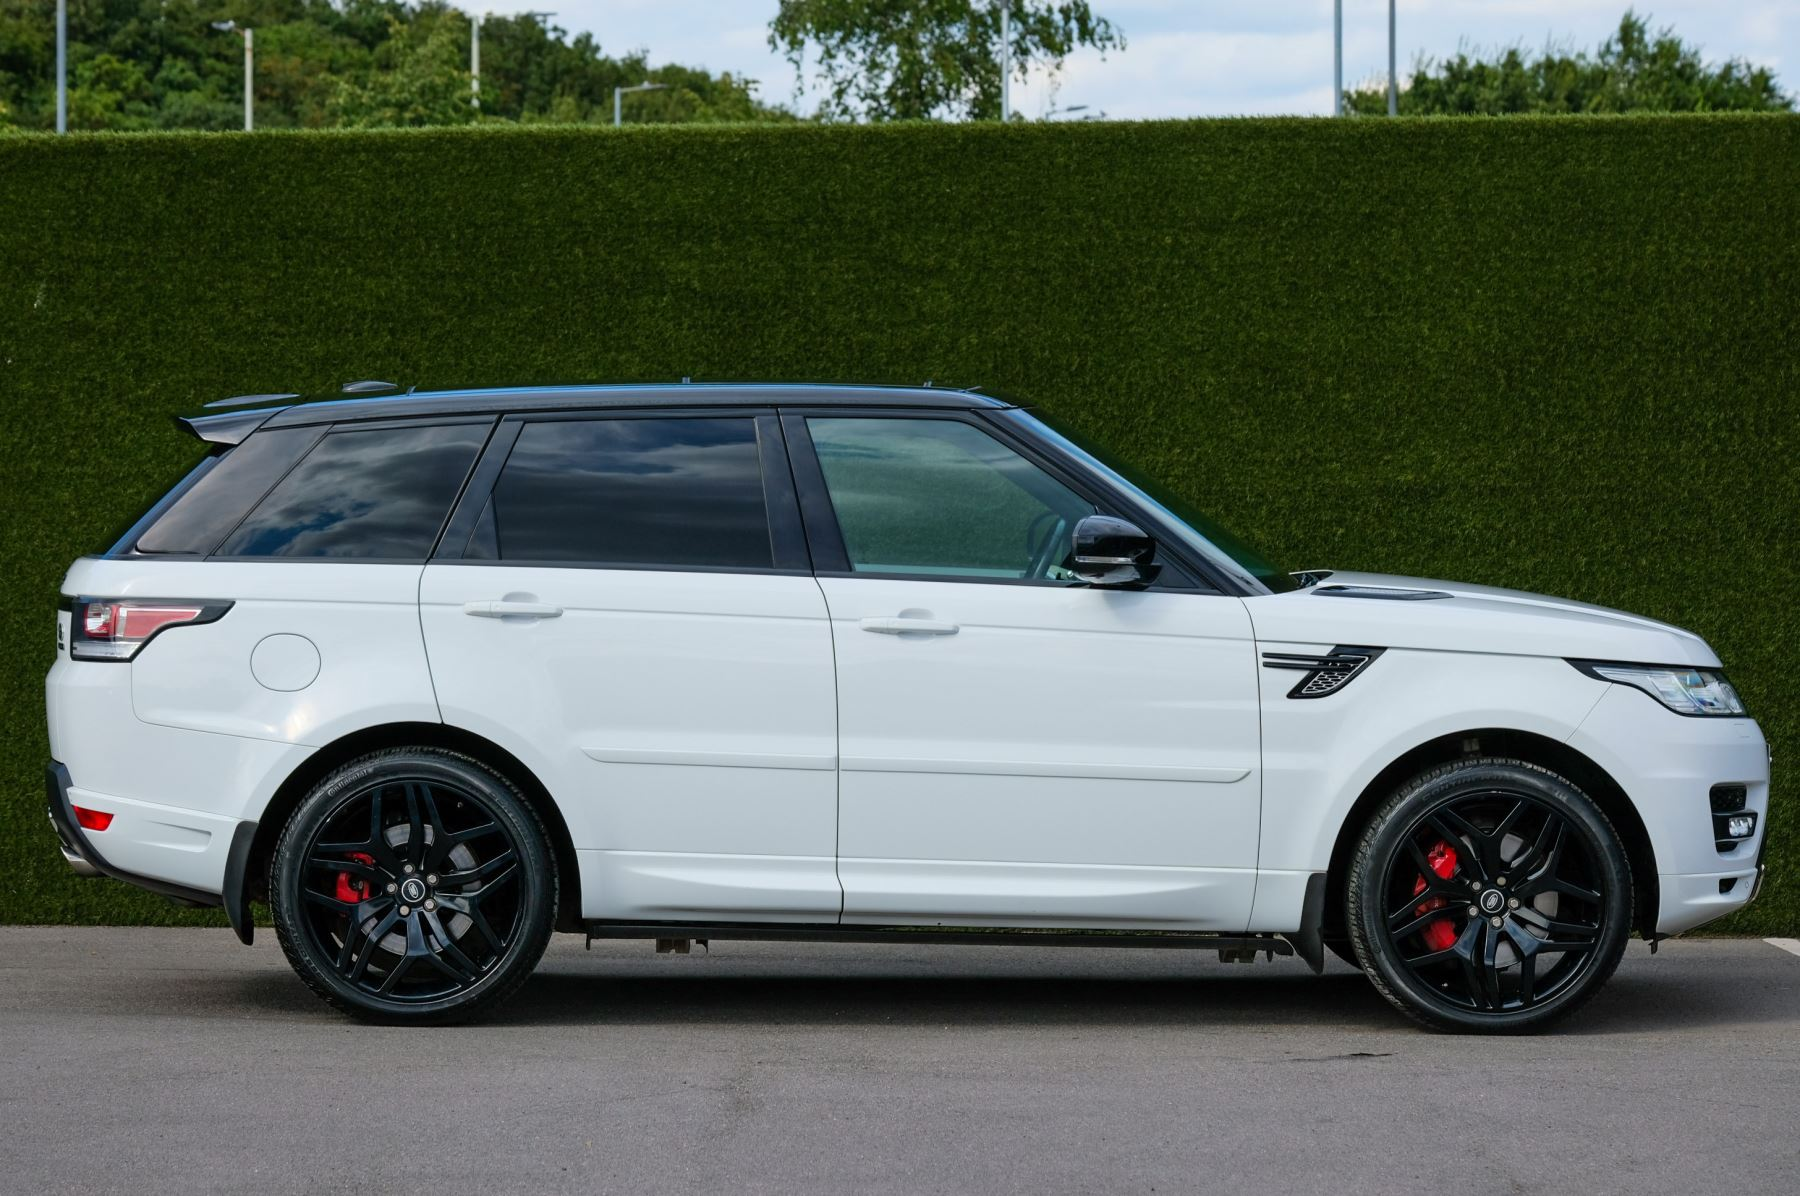 Land Rover Range Rover Sport 5.0 V8 S/C Autobiography Dynamic - 22 Inch Alloy Wheels - LED Signature Lights - 360 Camera image 4